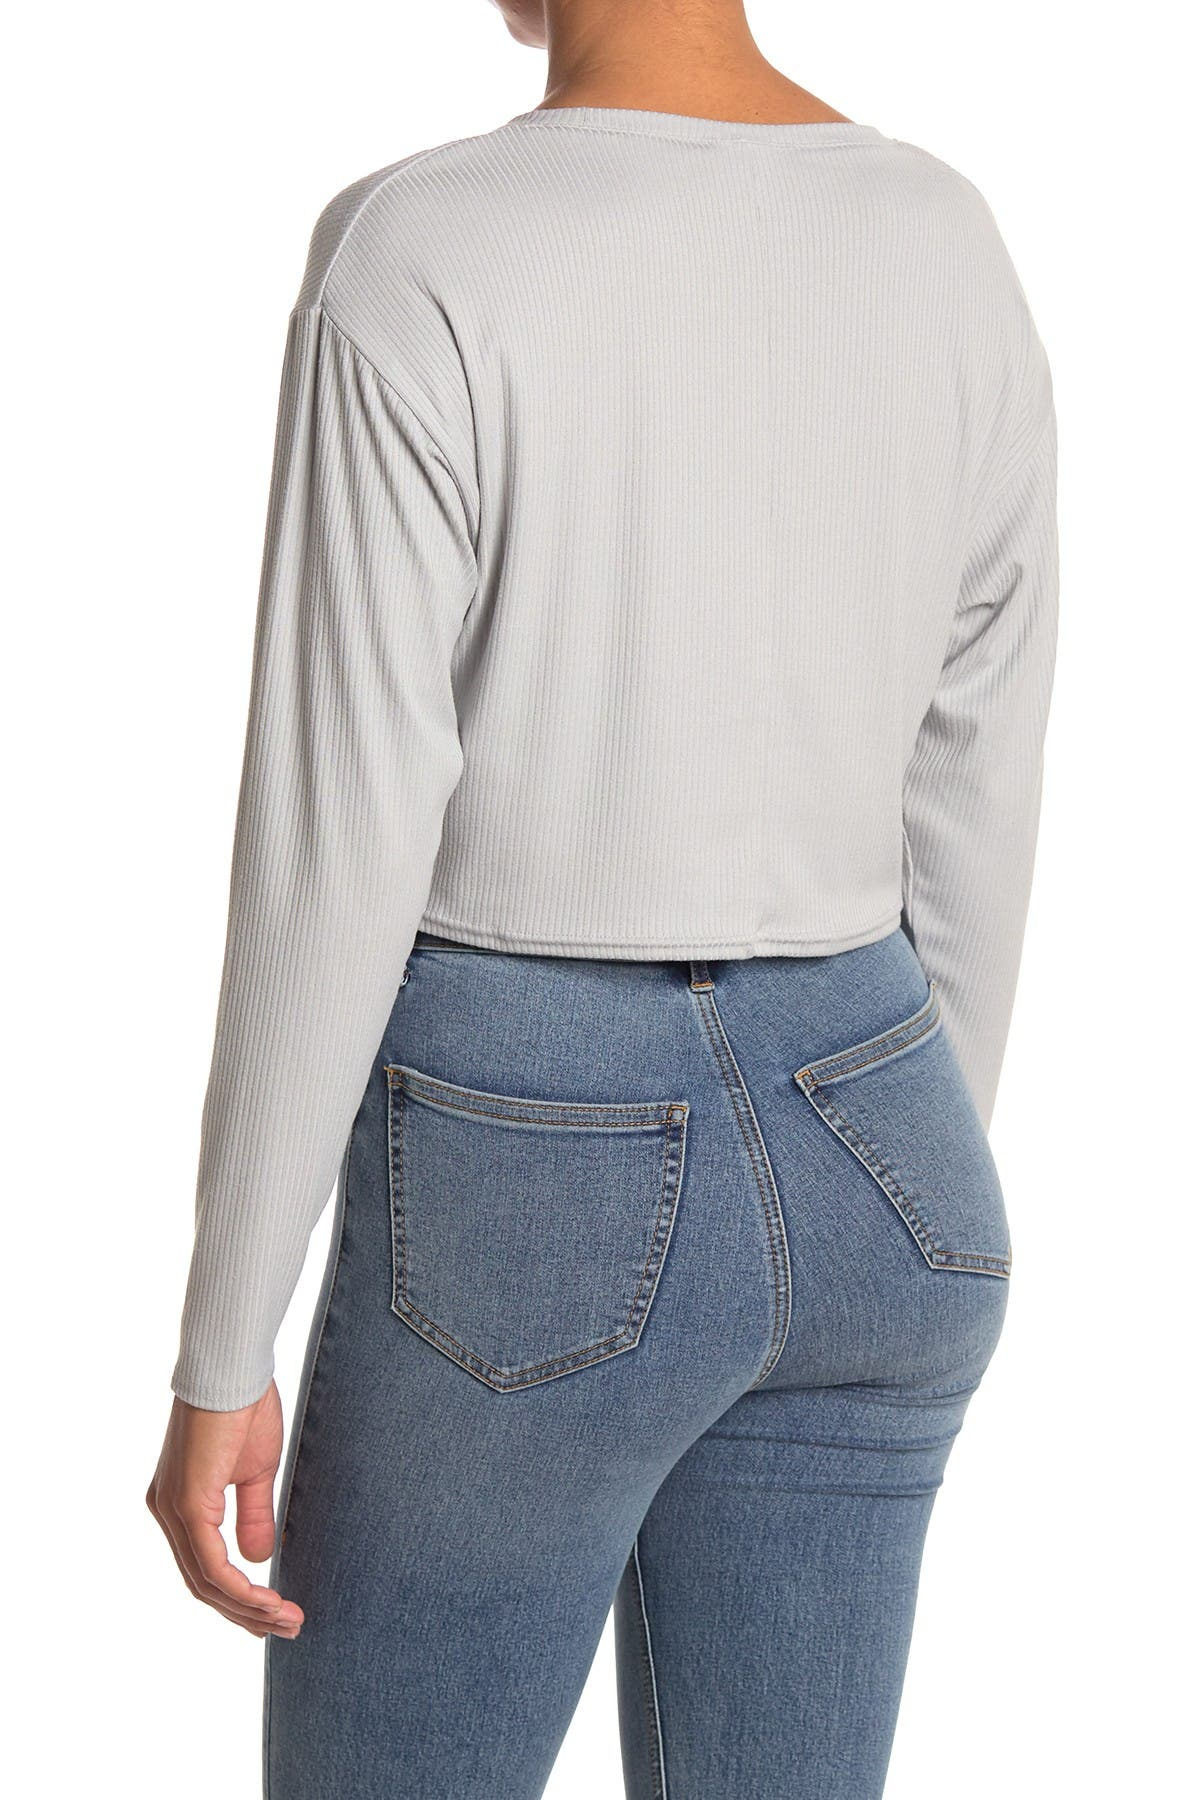 Image of Abound Cropped Rib Knit Shirt